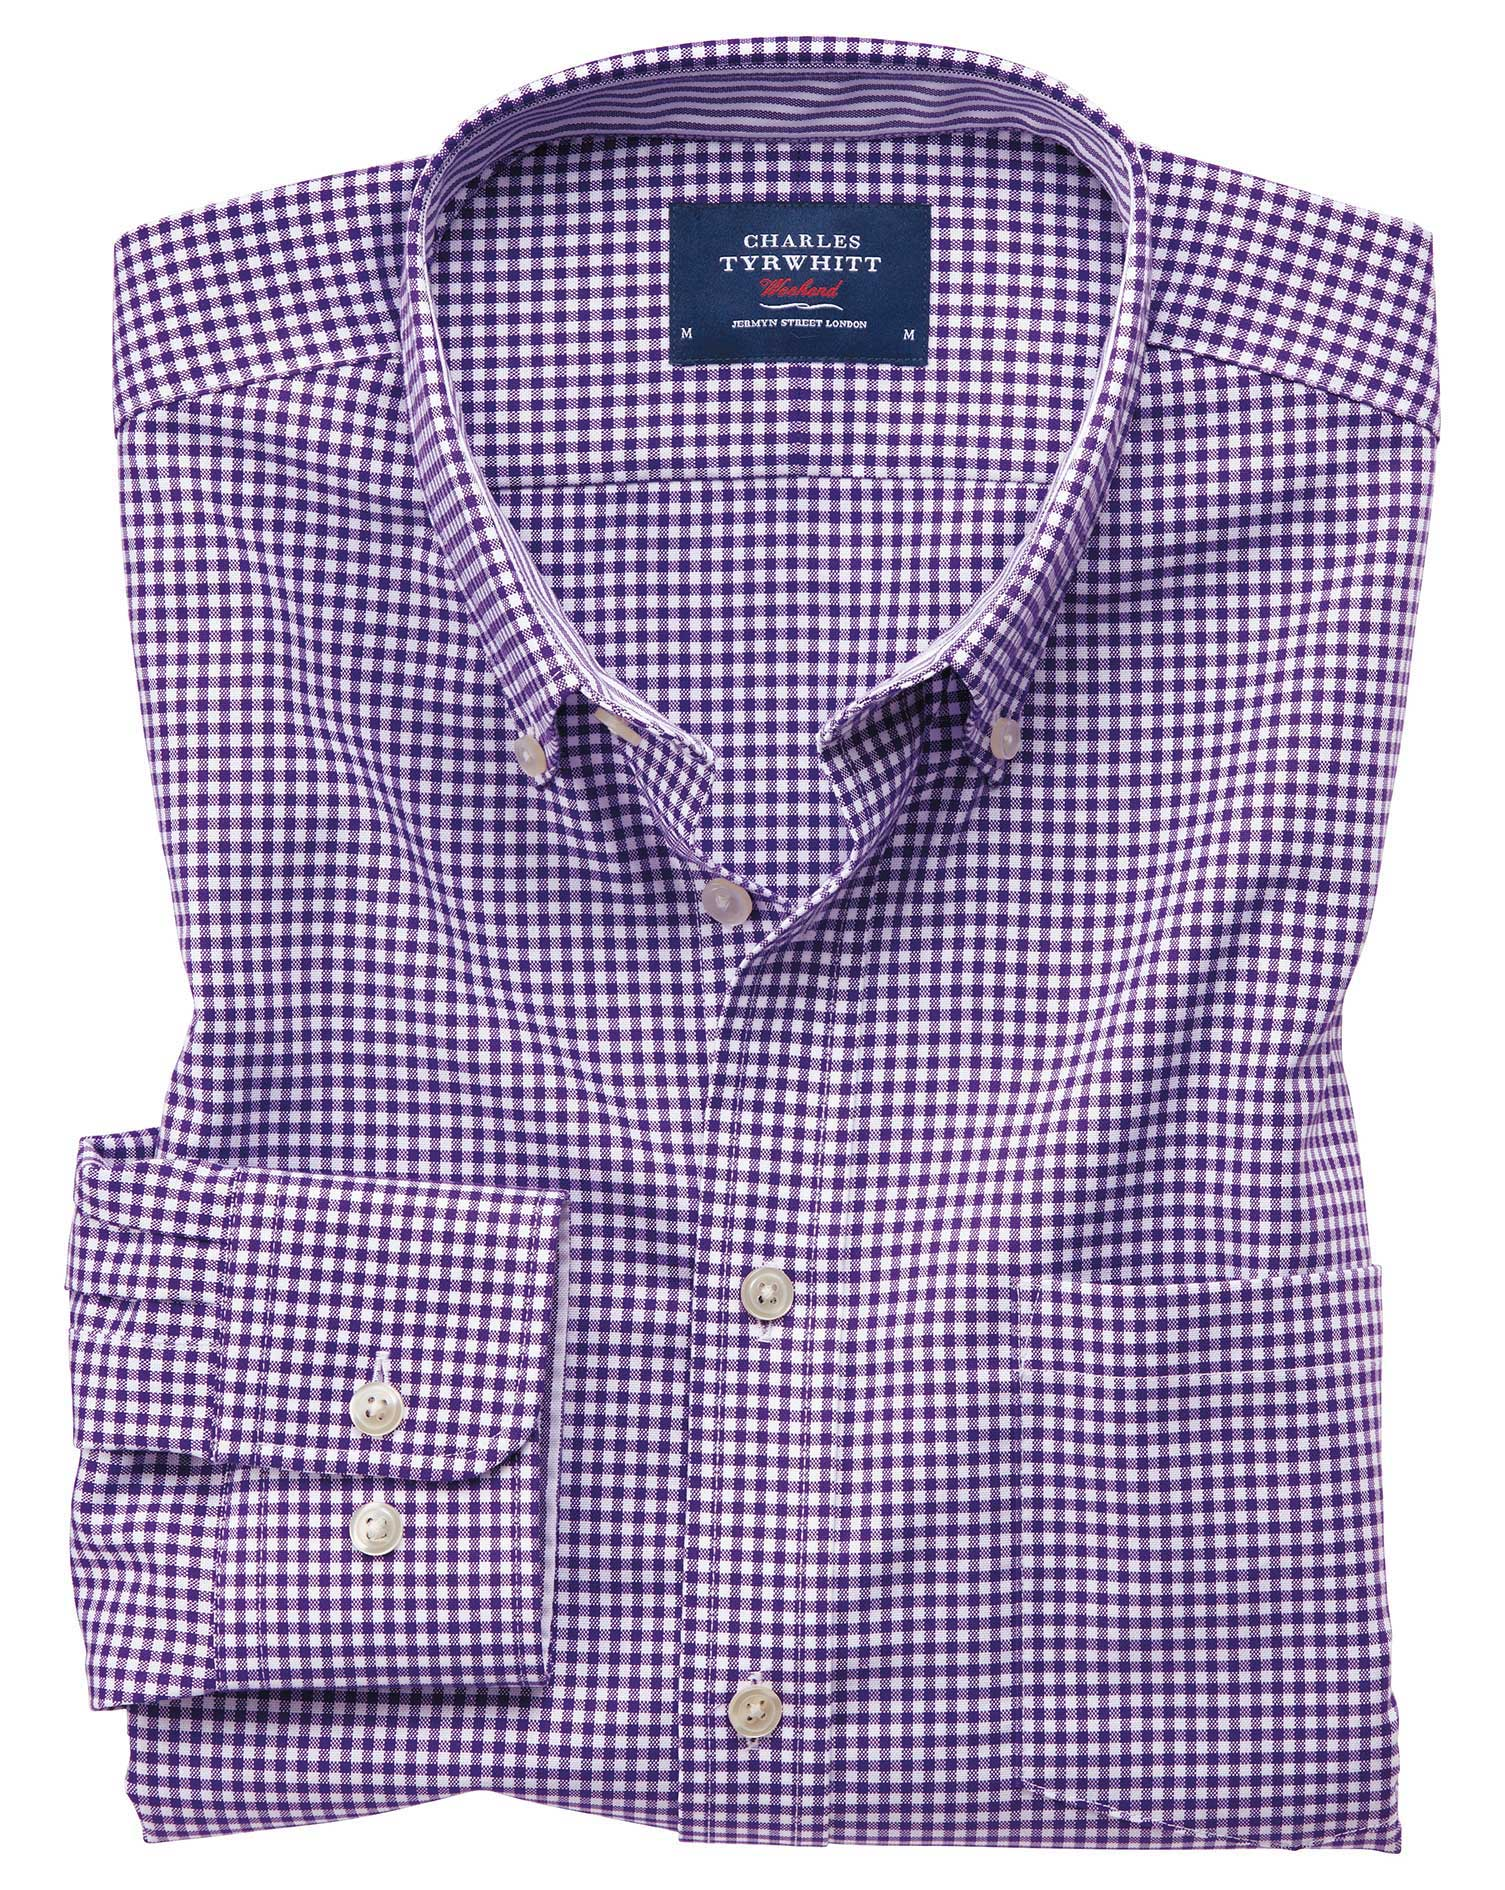 Extra Slim Fit Button-Down Non-Iron Oxford Gingham Purple Stripe Cotton Shirt Single Cuff Size XS by